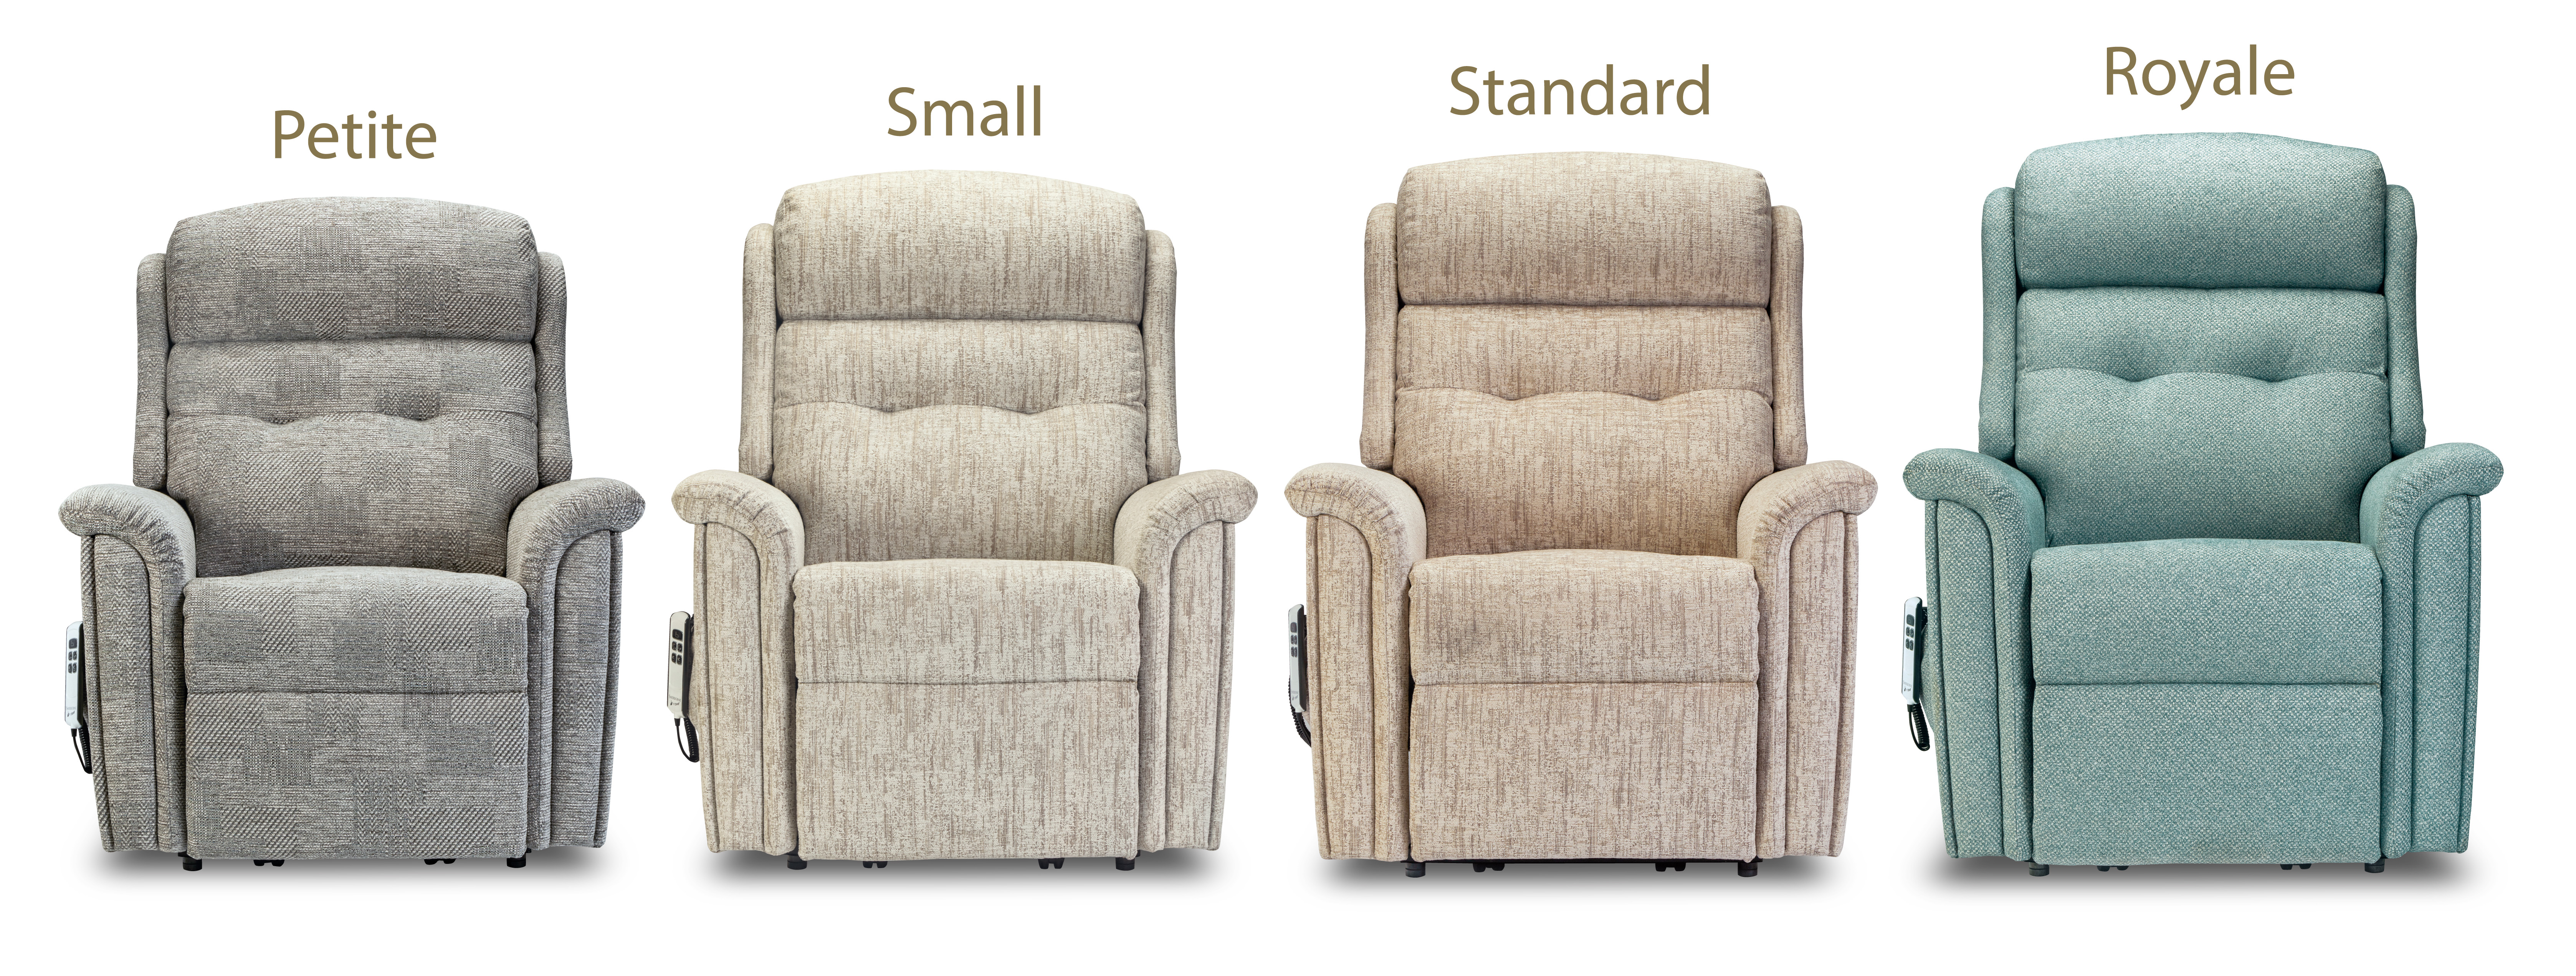 Roma Riser Recliners 4 Sizes pg25 (F)